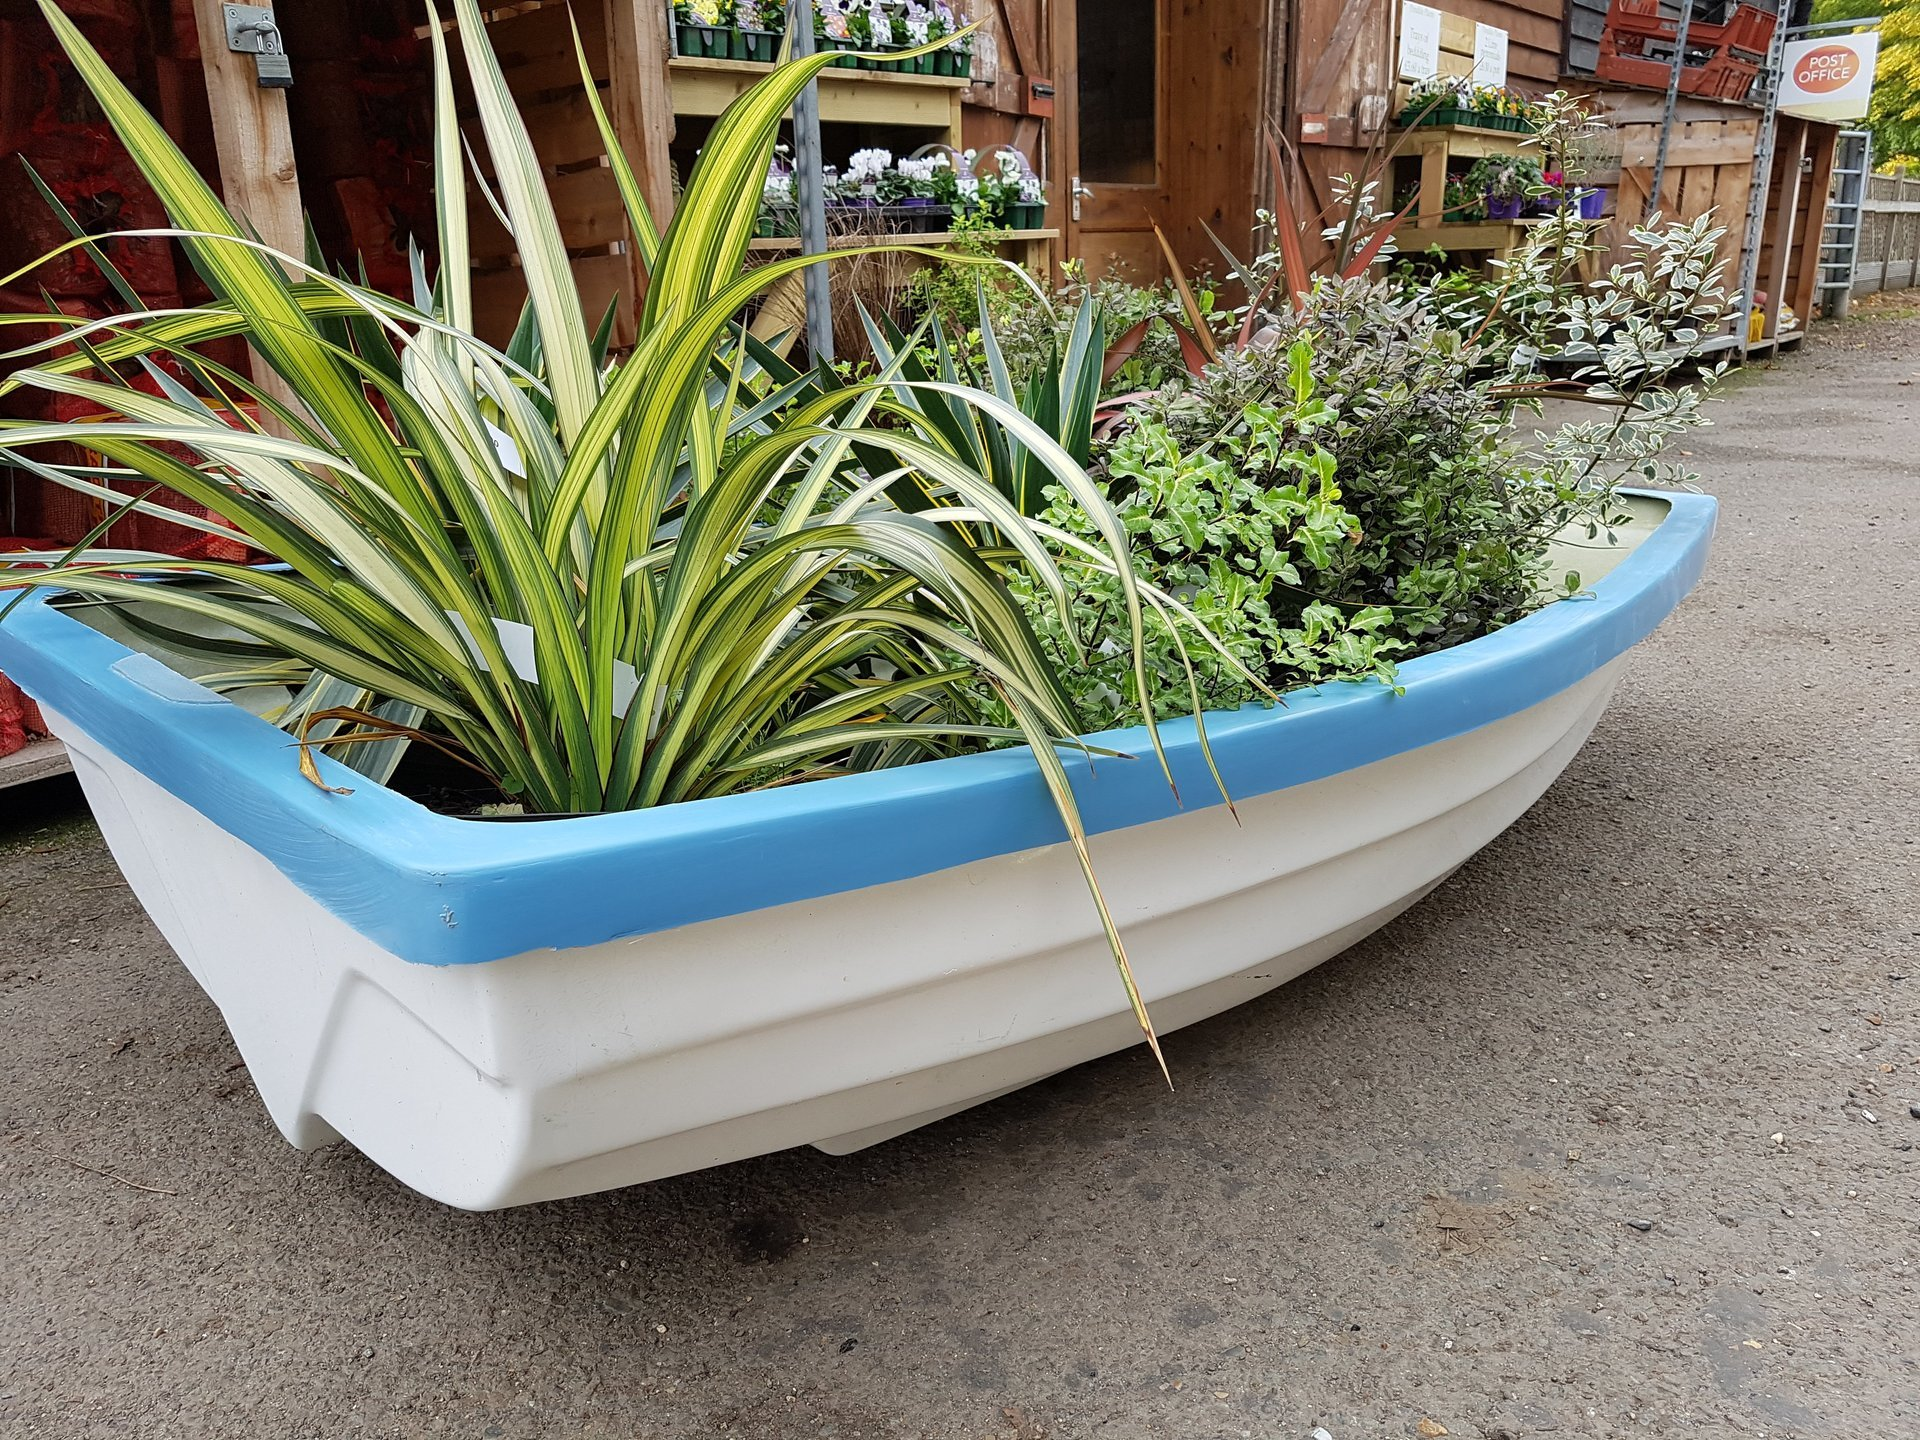 Feature Dinghy